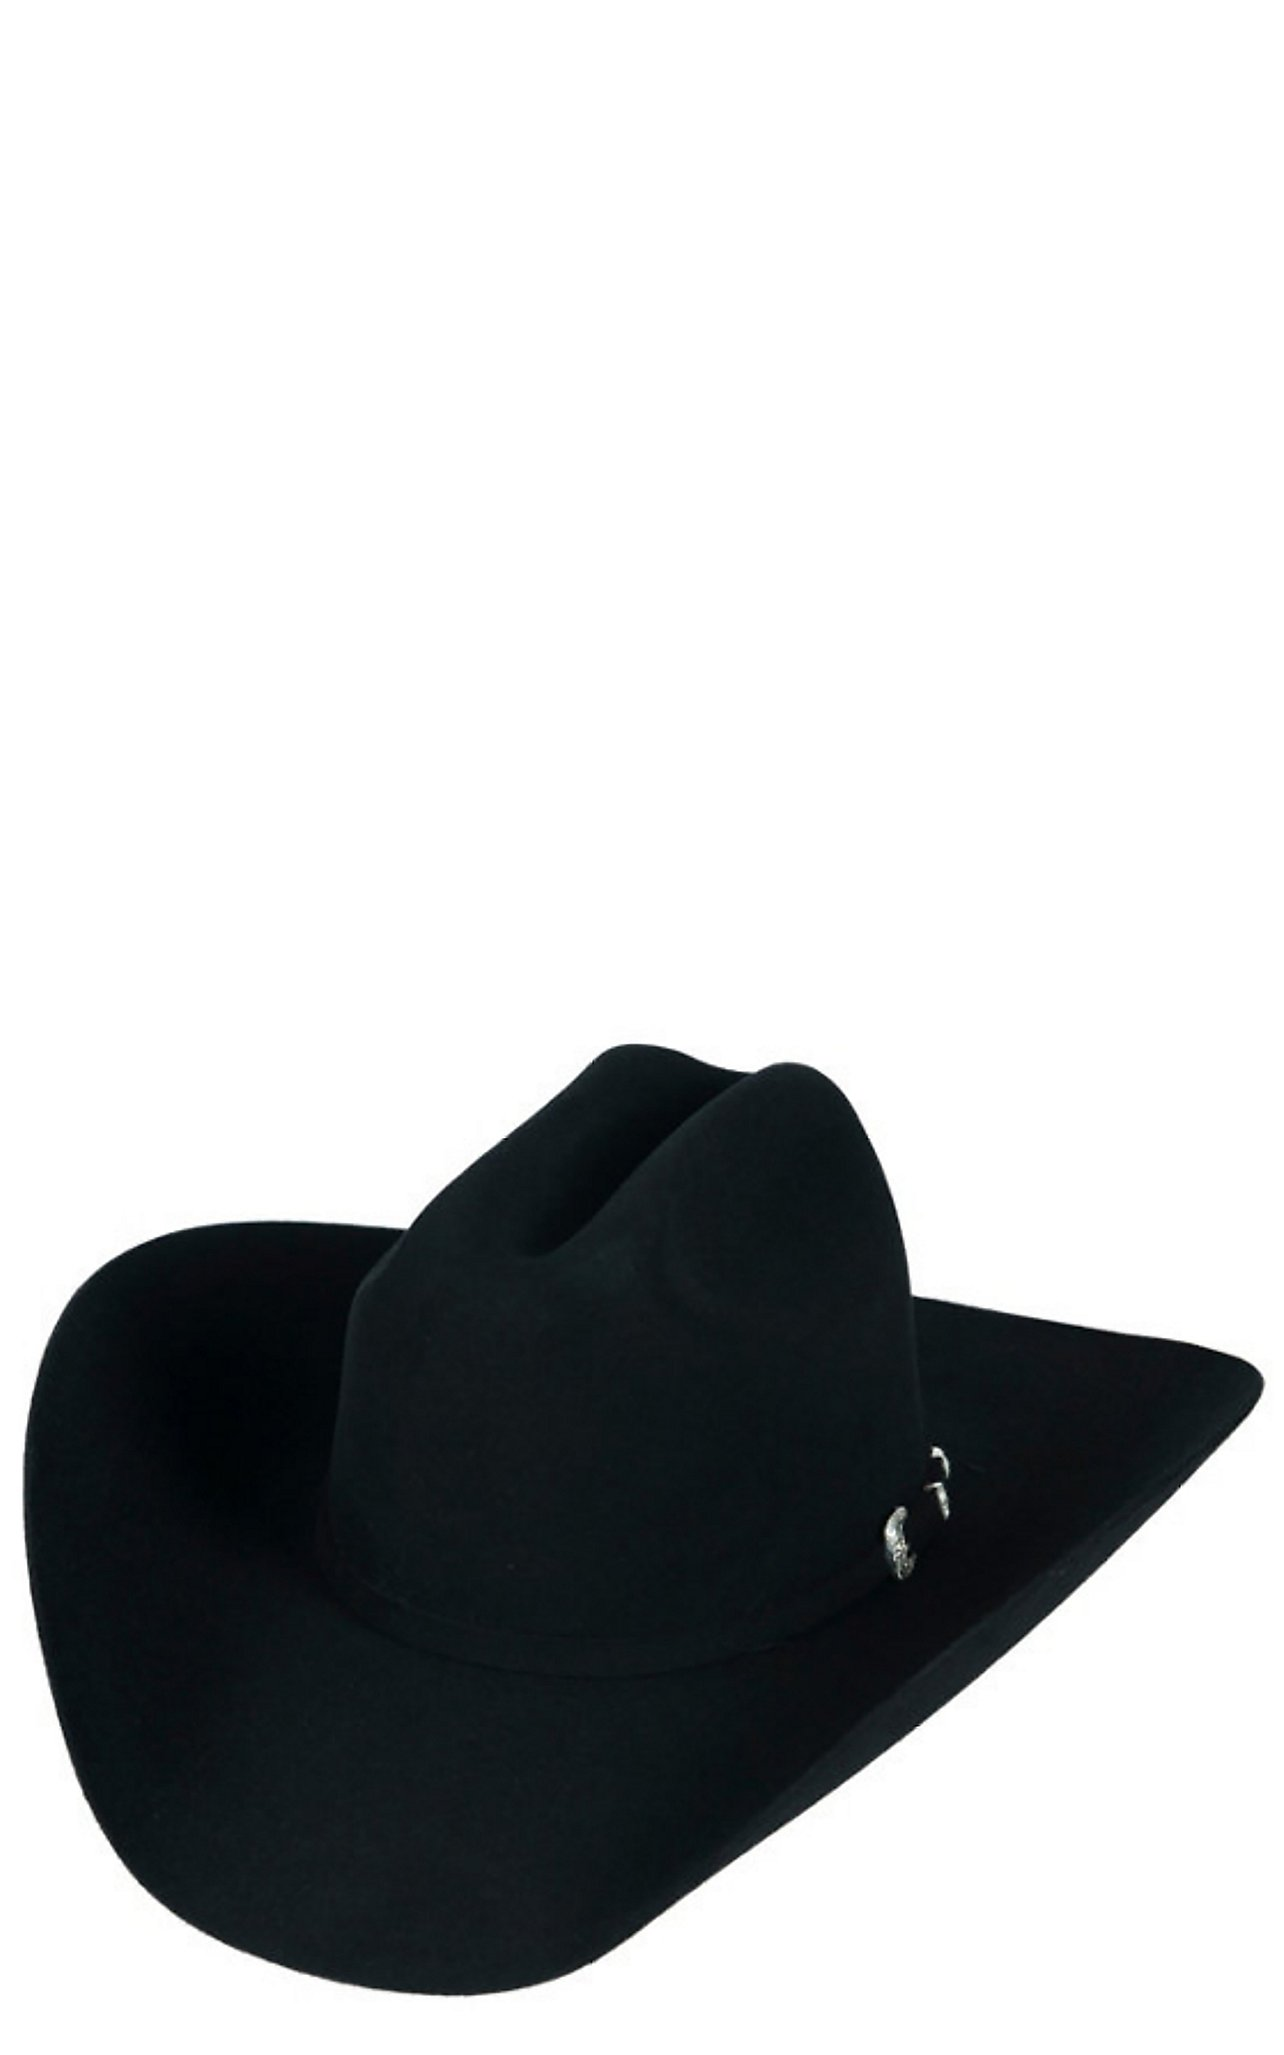 Resistol 20X Black Gold Long Oval Black Felt Cowboy Hat 21b6b45ed65